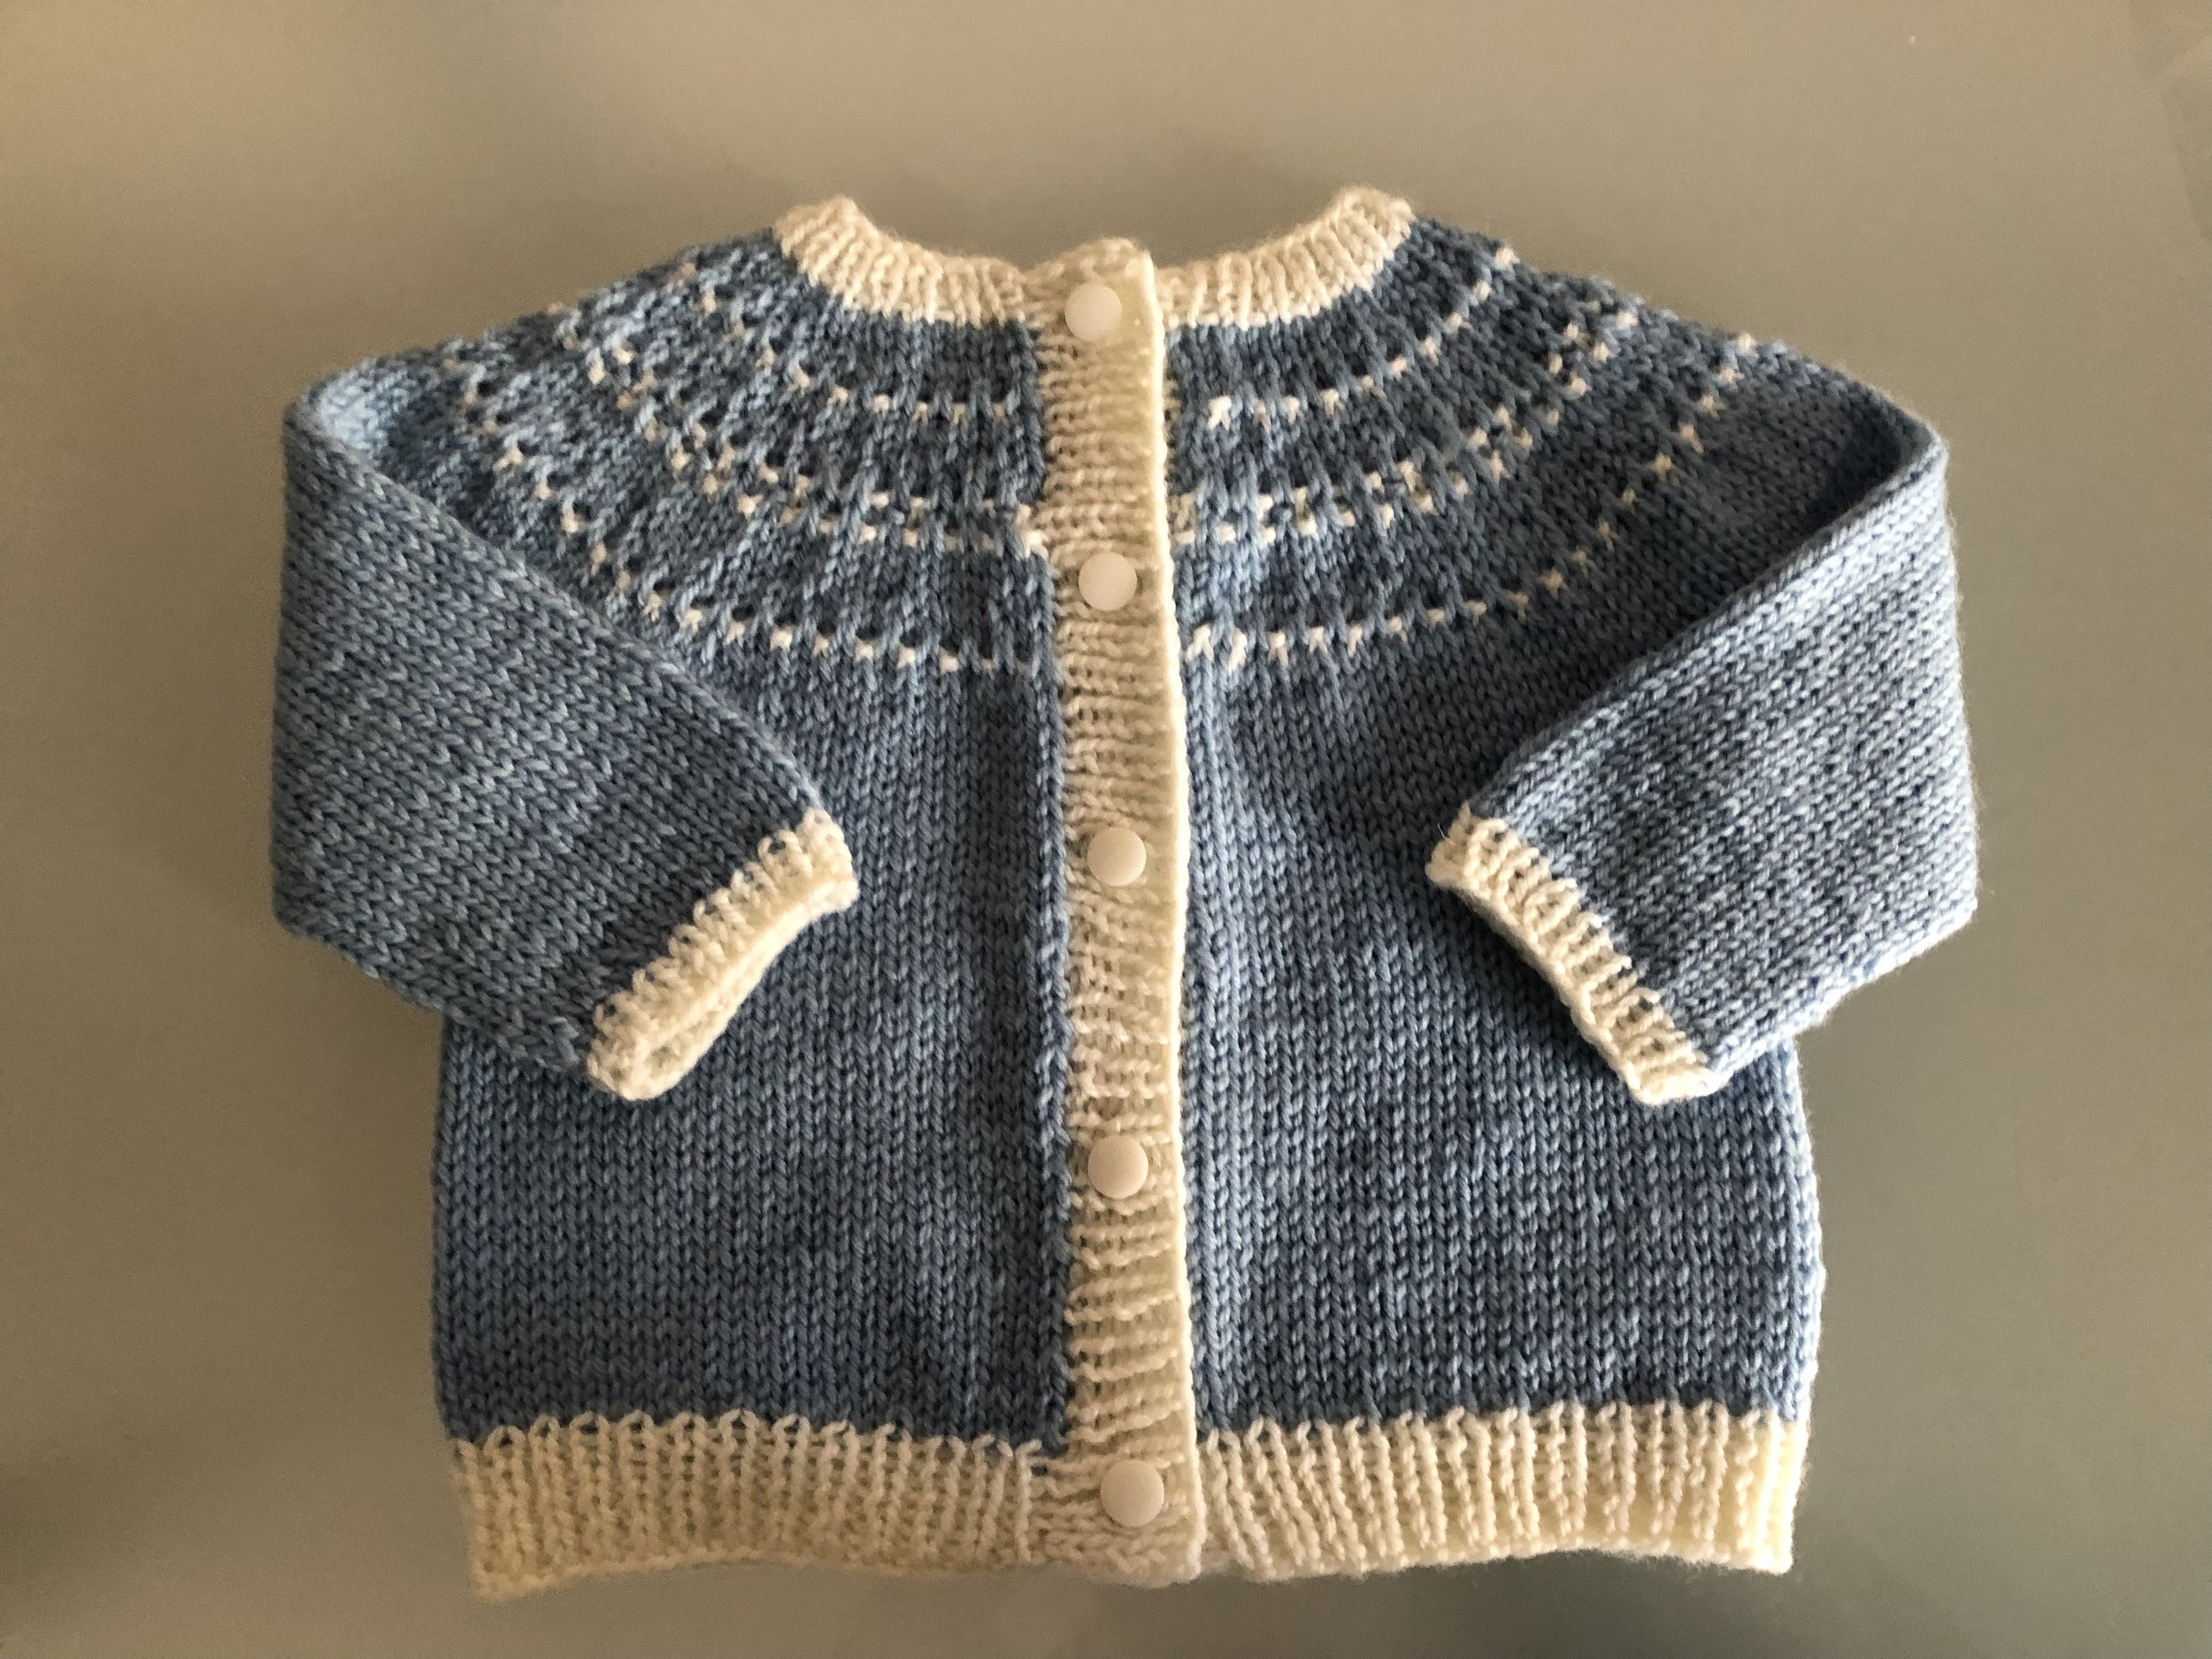 Arnica baby cardigan designed by  Orlane Sucche , knit by me in January 2019.